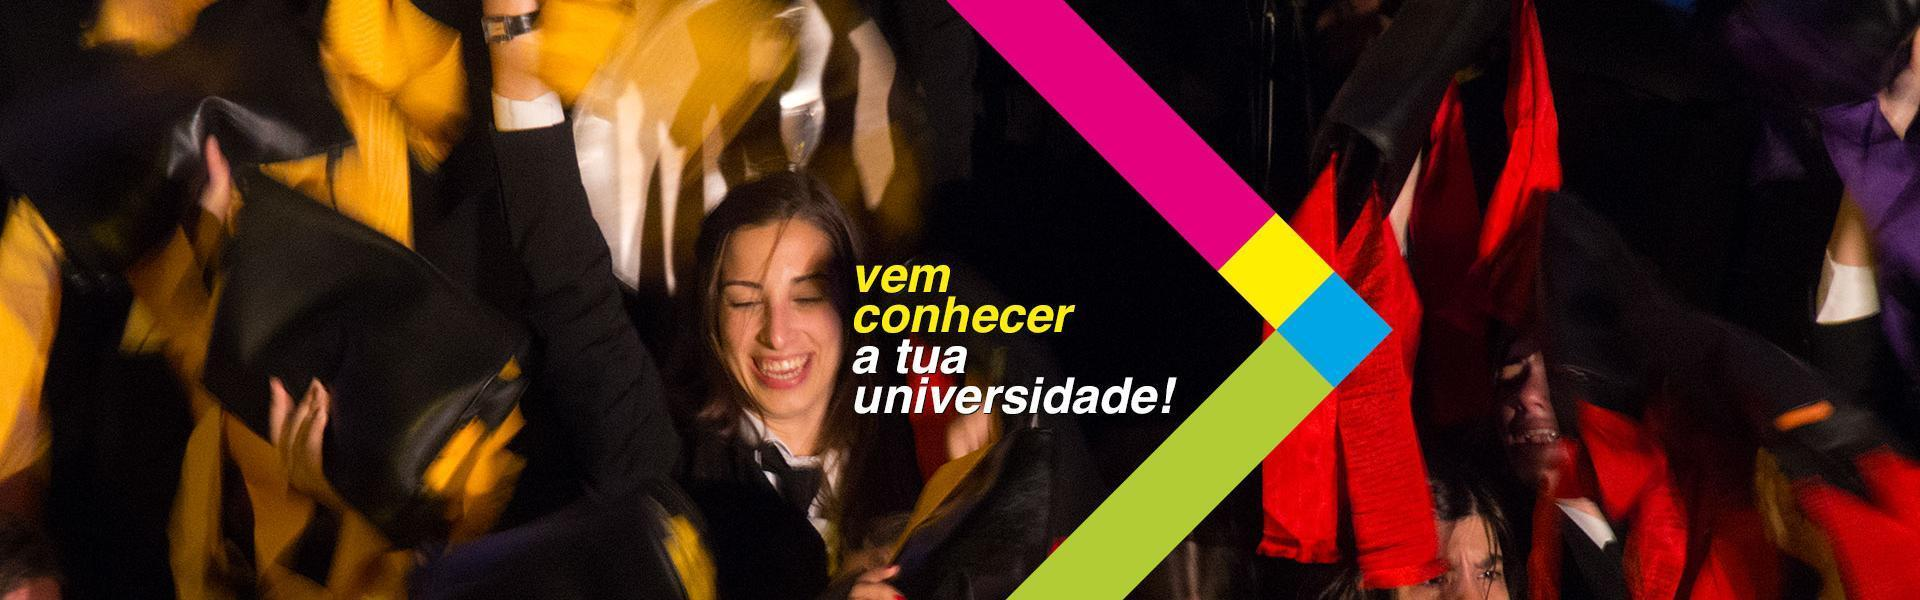 Applications to the University of Coimbra 2020/2021